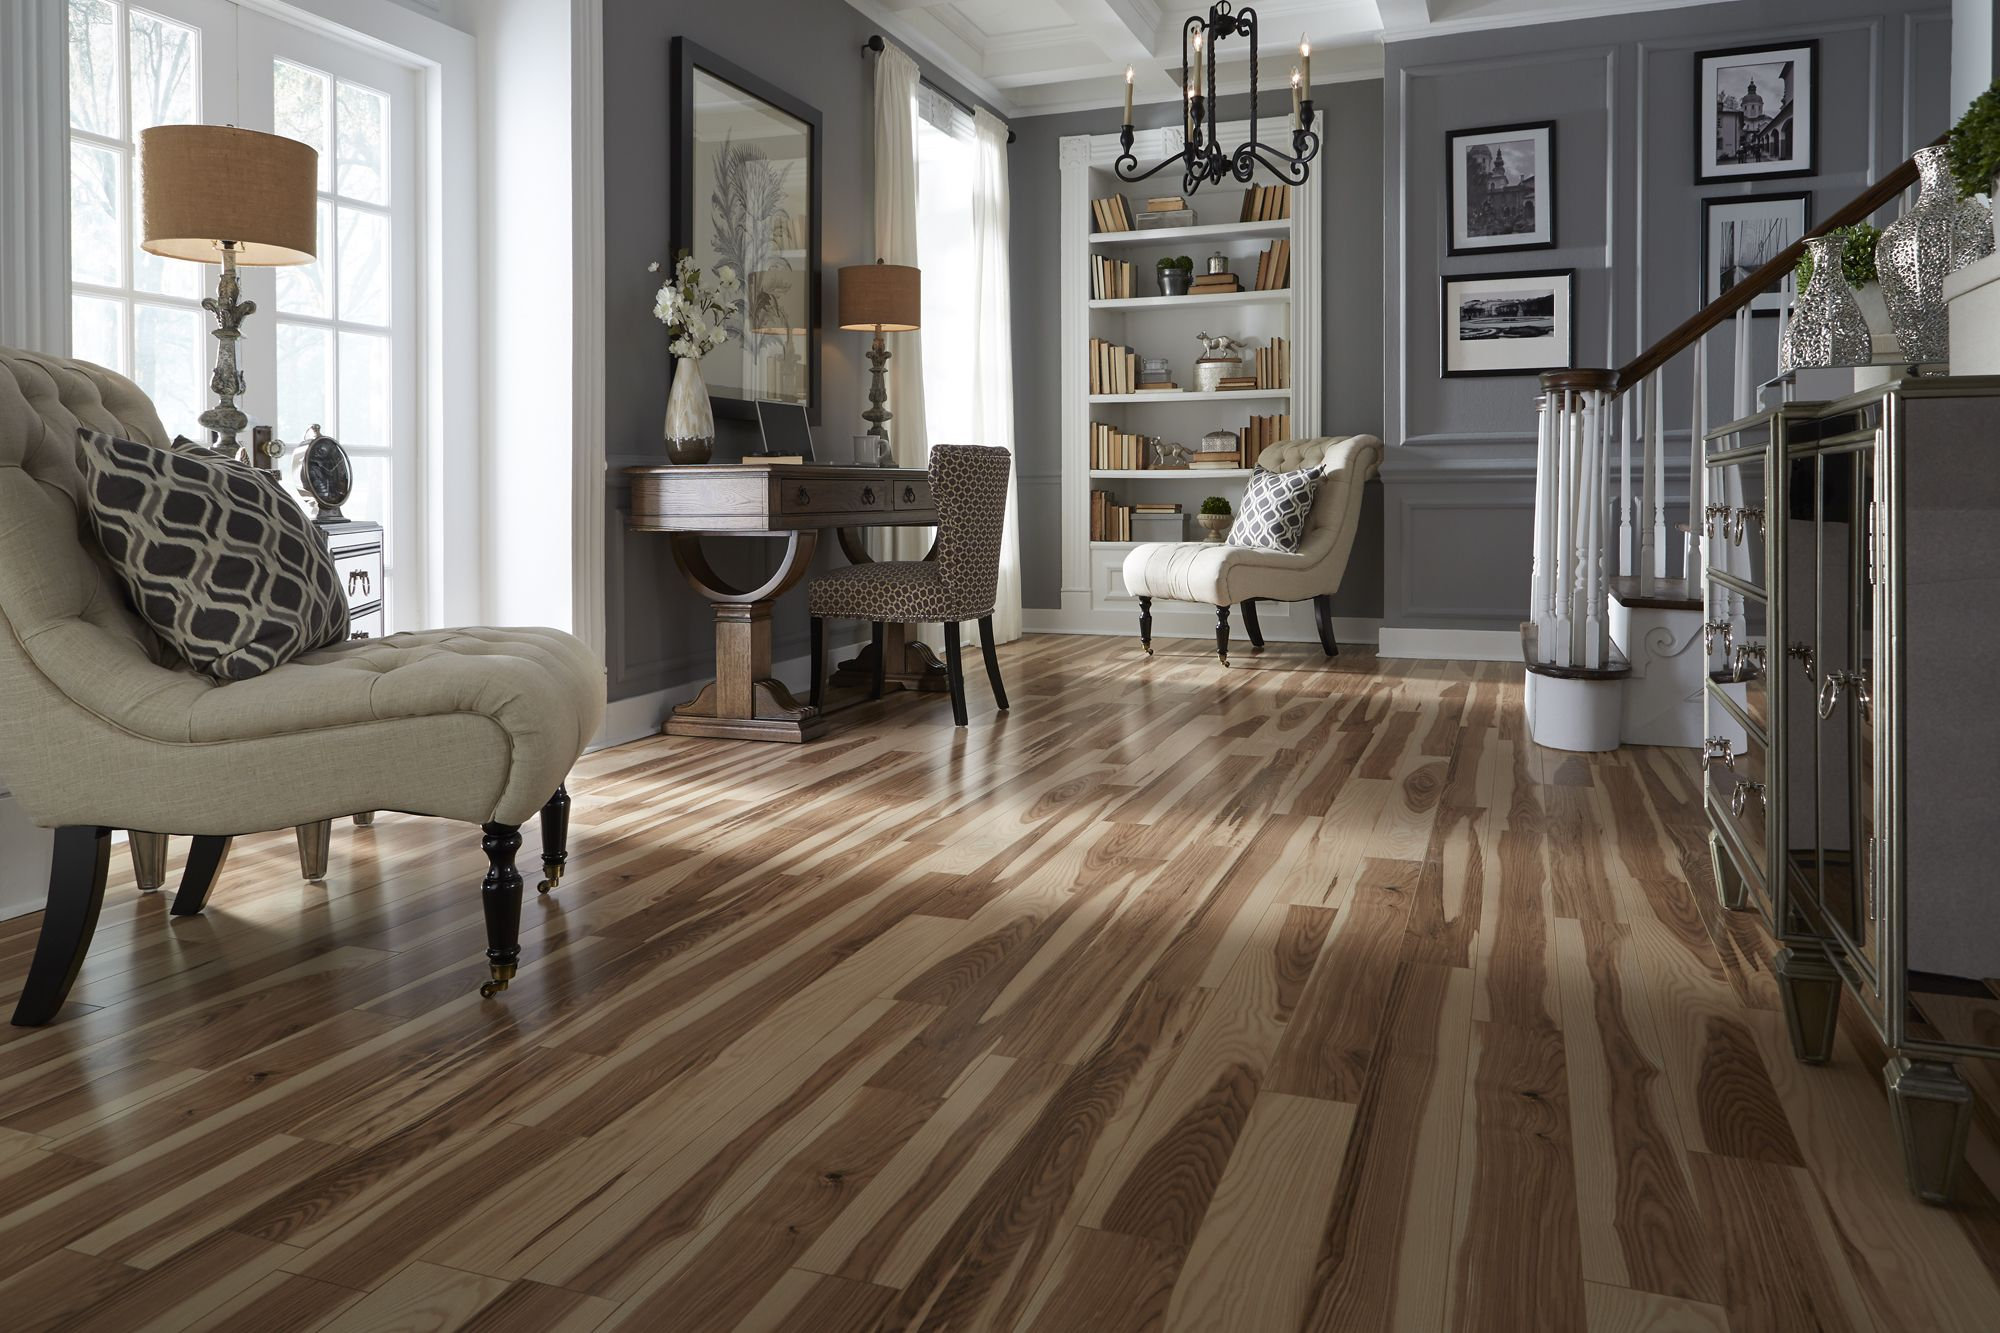 Grauer Laminat Welche Wandfarbe Top Style: This Laminate Floor Is The Opposite Of Plain